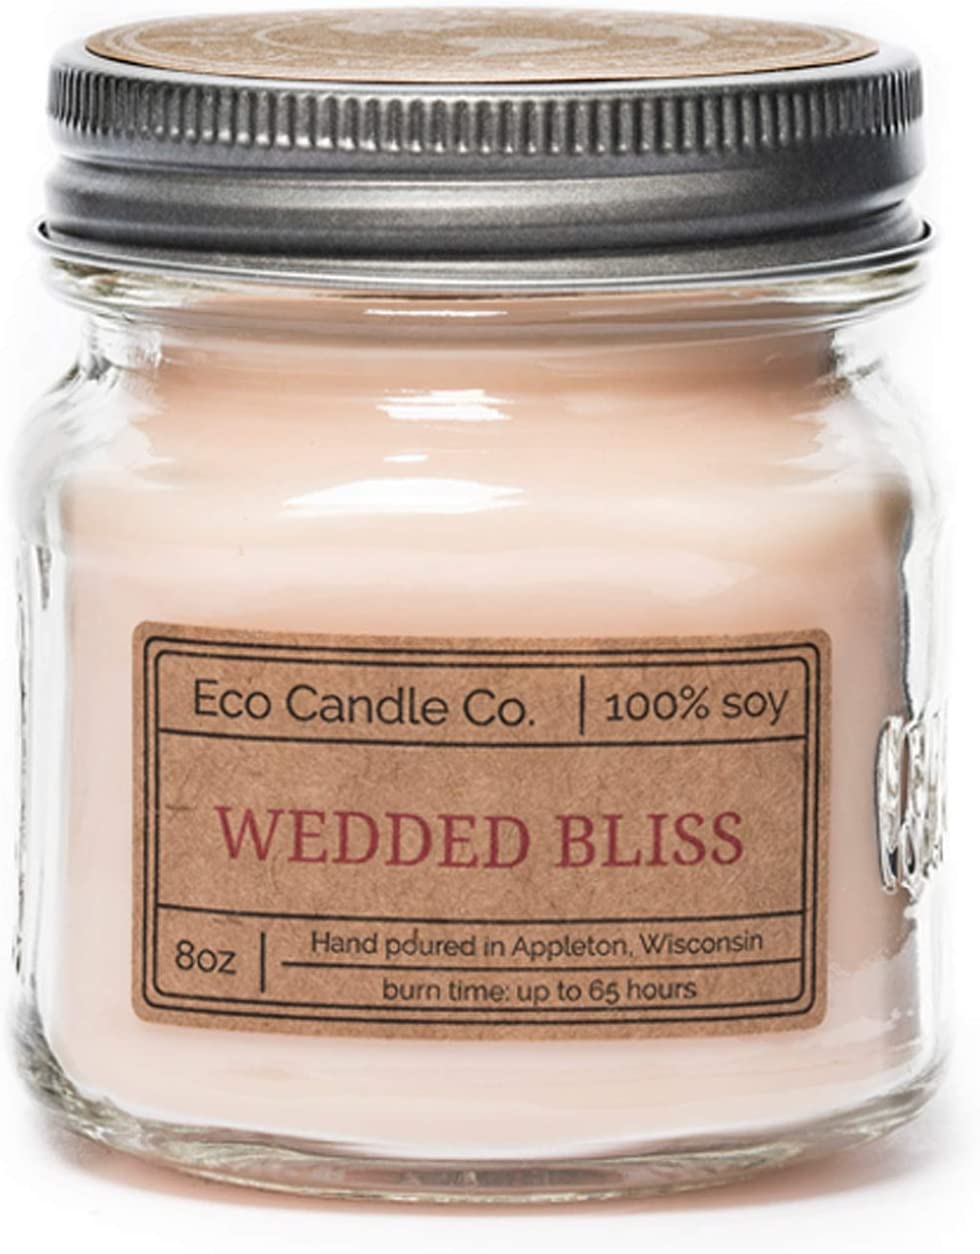 Eco Candle Co. Mason Jar Candle, Wedded Bliss, 8 oz. - Scents of Strawberries, Champagne, Lily of The Valley, & Apple Cider - 100% Soy Wax, No Lead, Kraft Label & Antiqued Pewter Lid, Hand Made